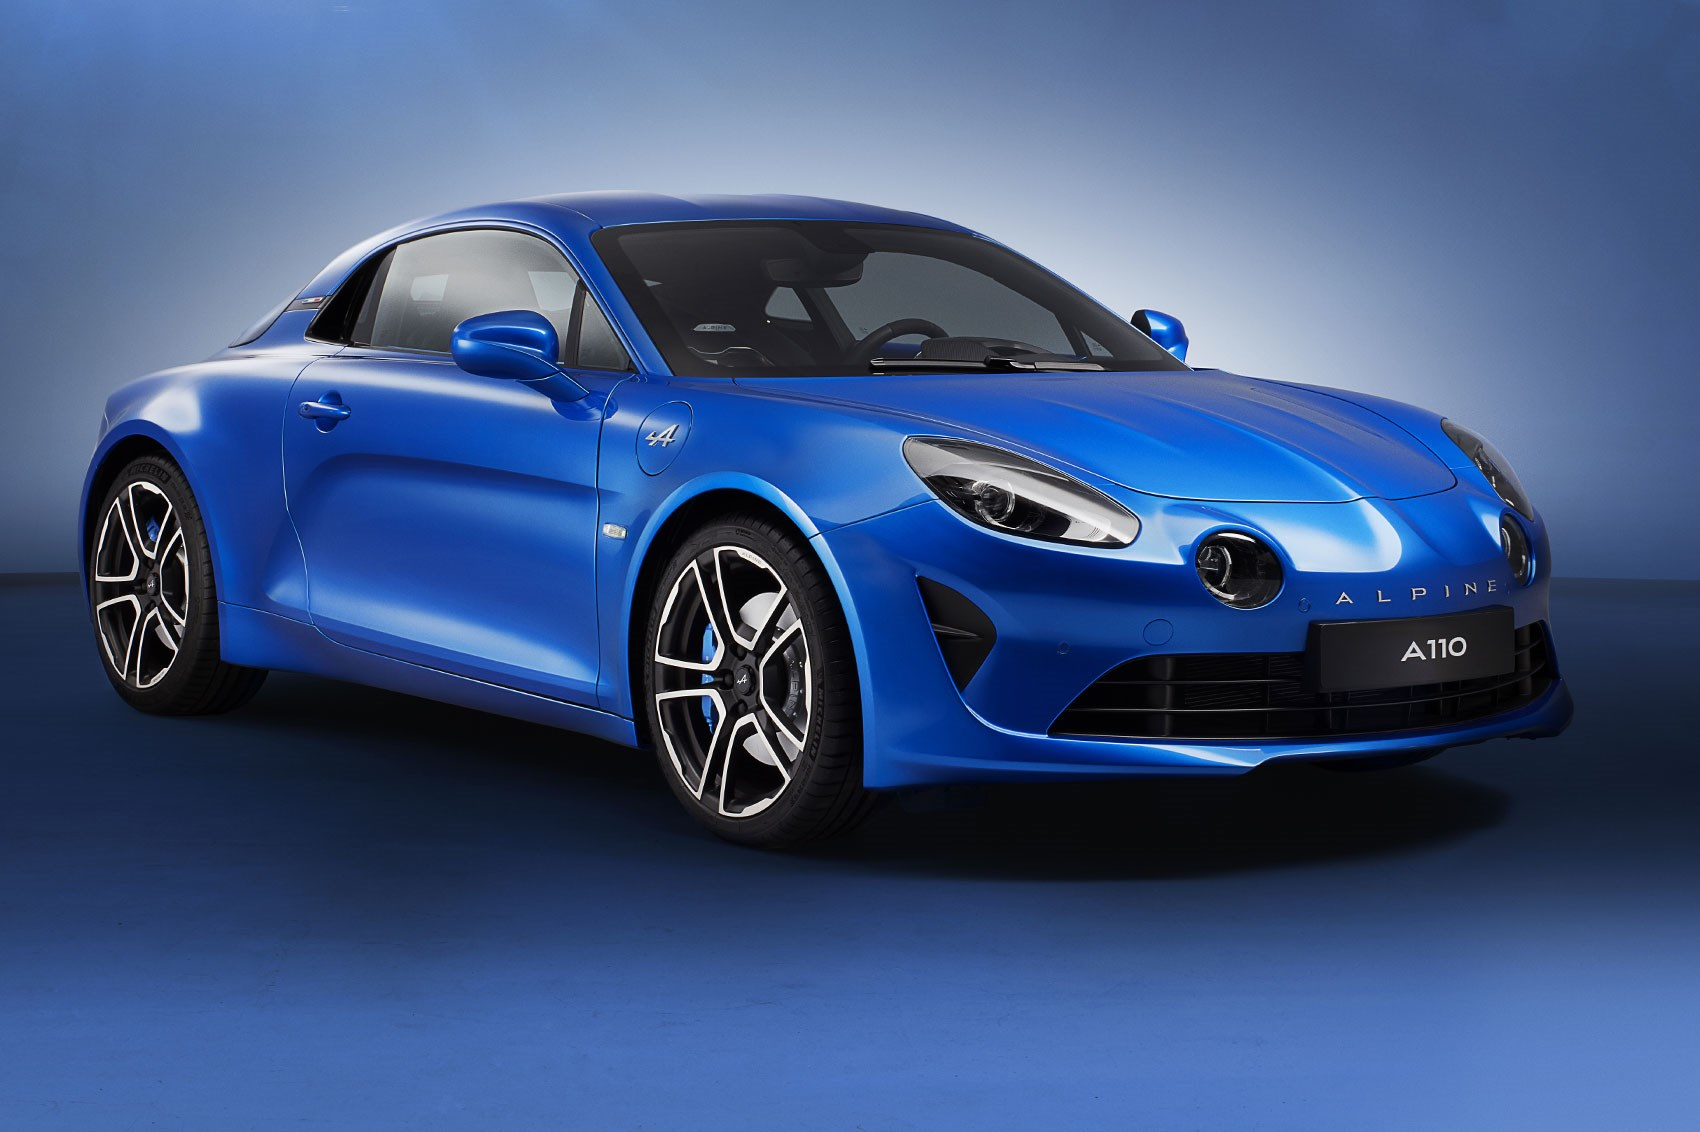 Alpine A110 Full Specs And Prices By Car Magazine